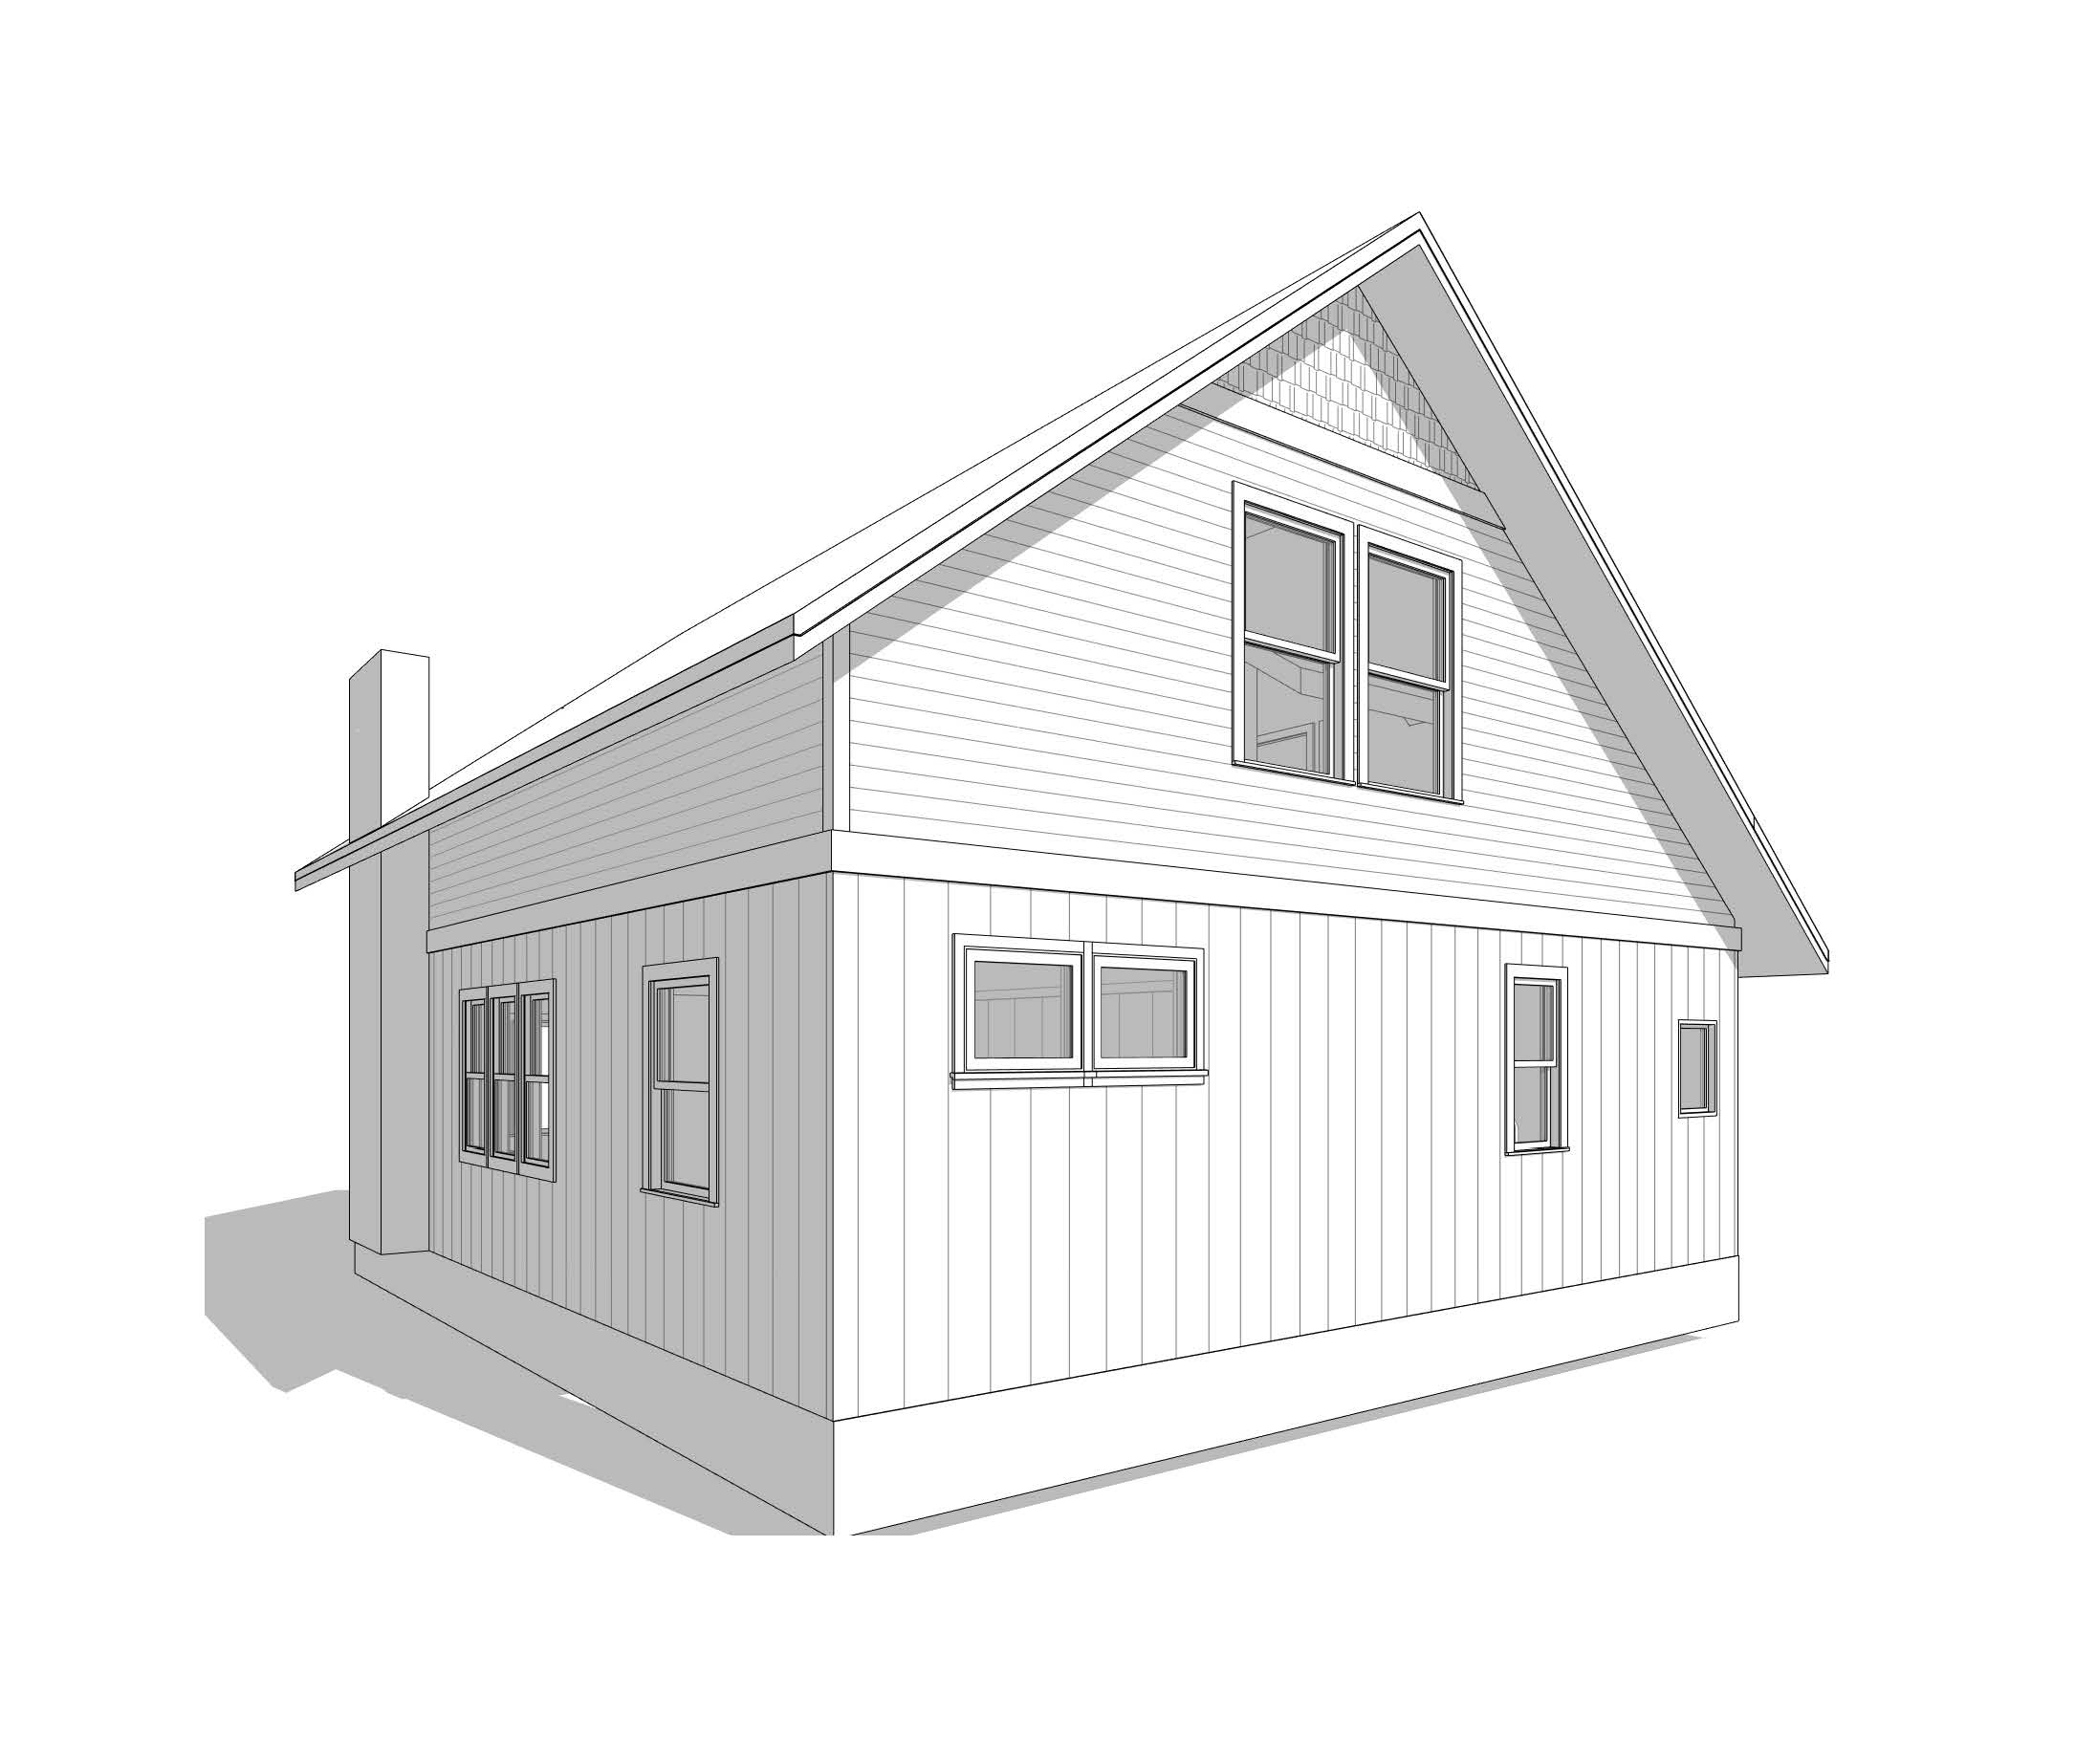 Proposed Cottage 2nd Story Loft Addition (see Image #1 below for before picture).